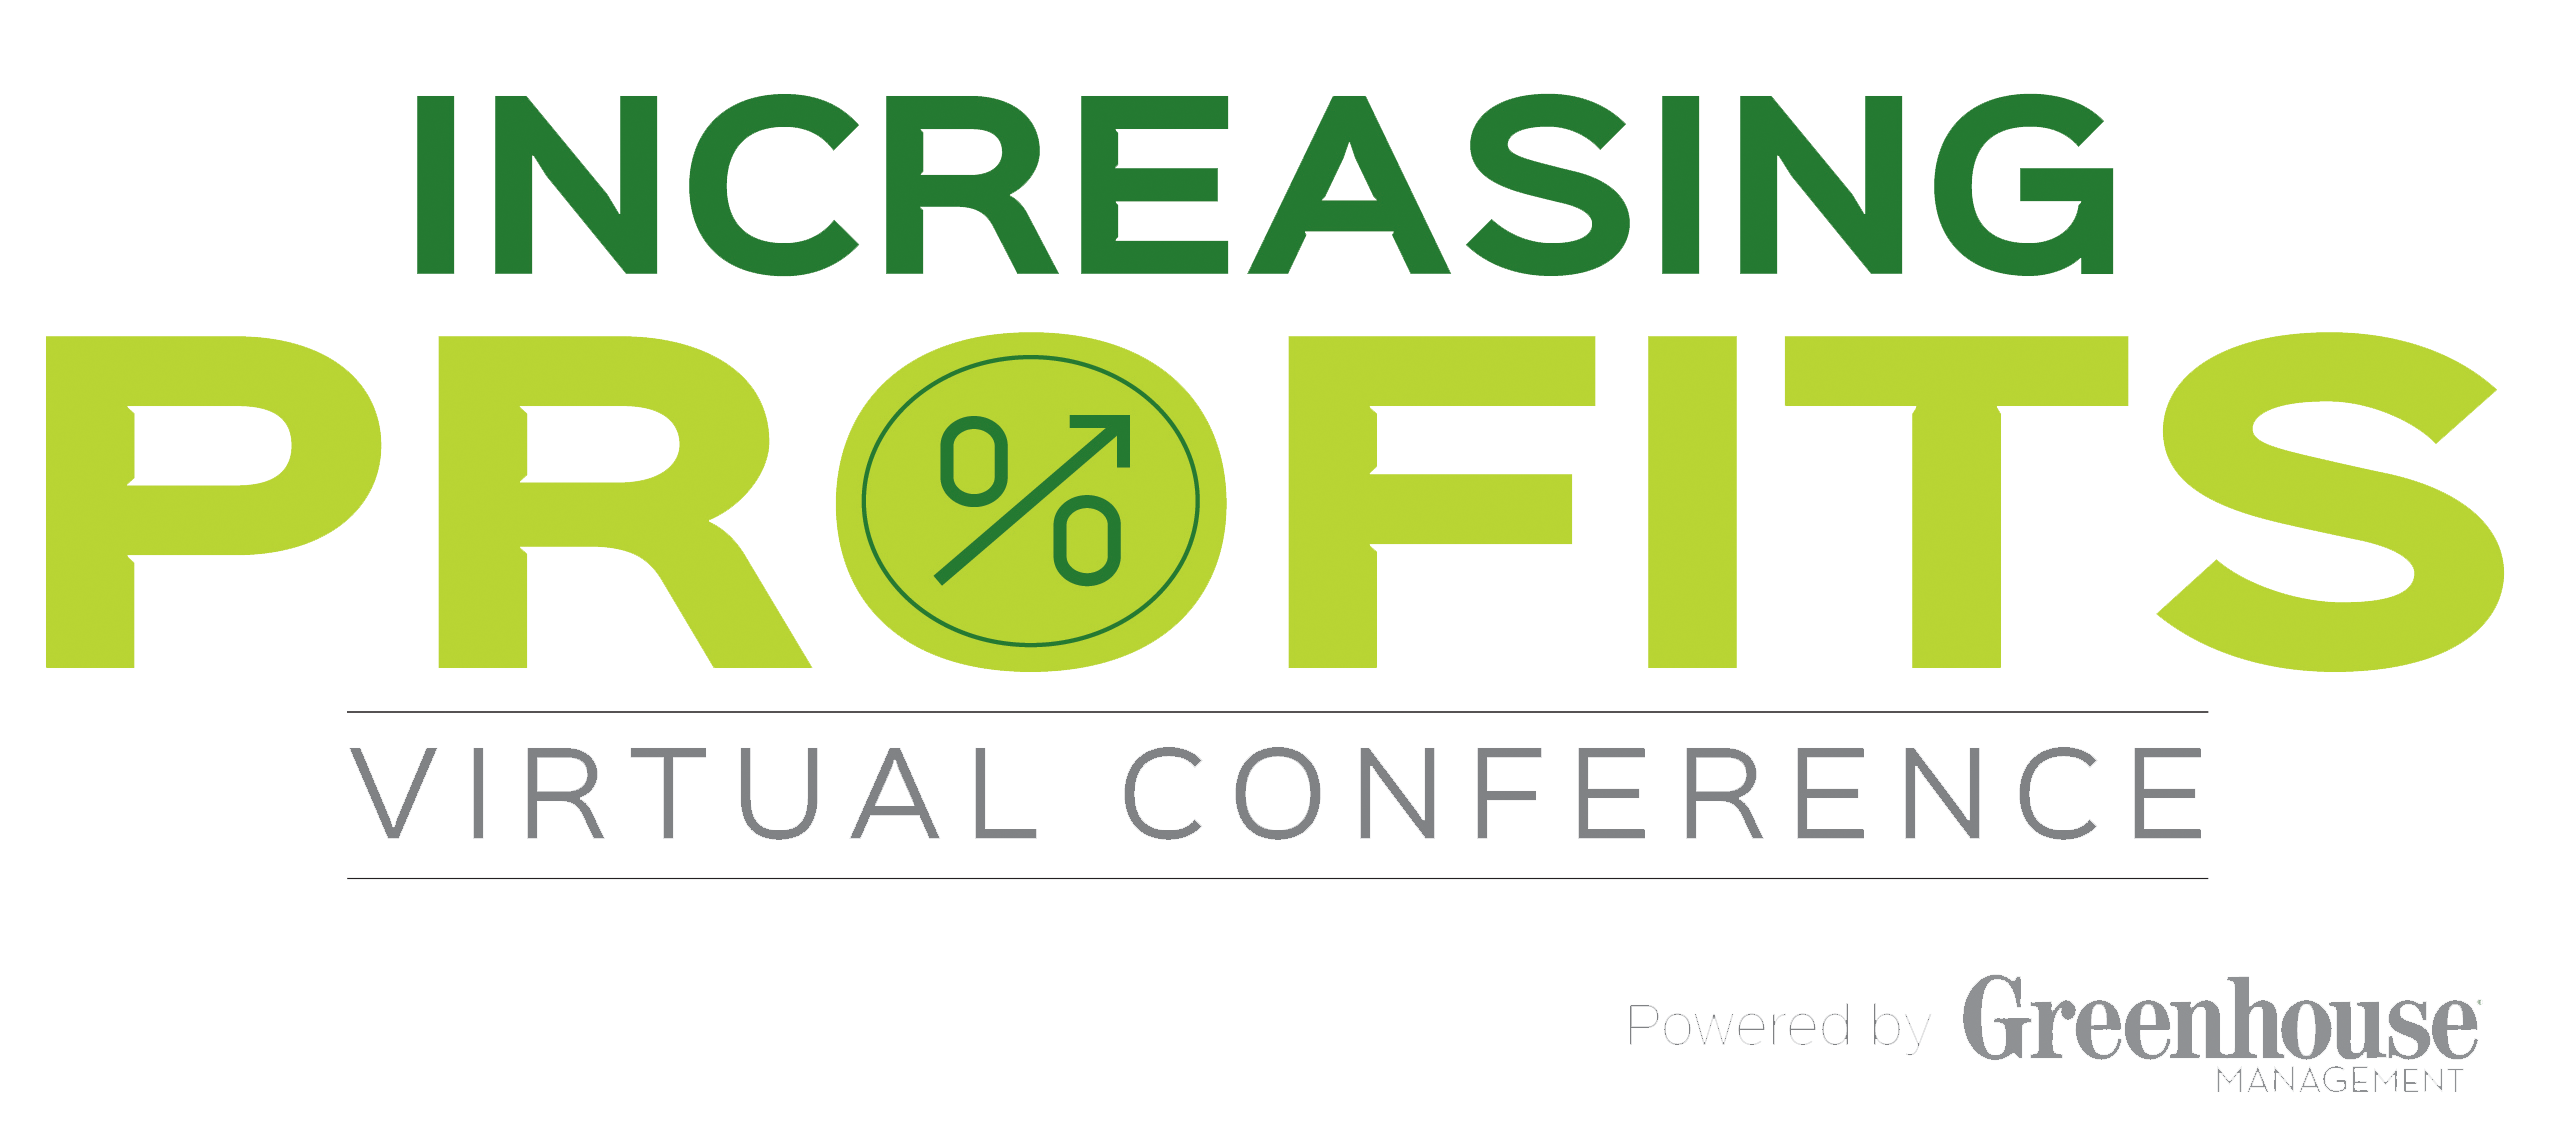 Increasing Profits Virtual Conference - GM